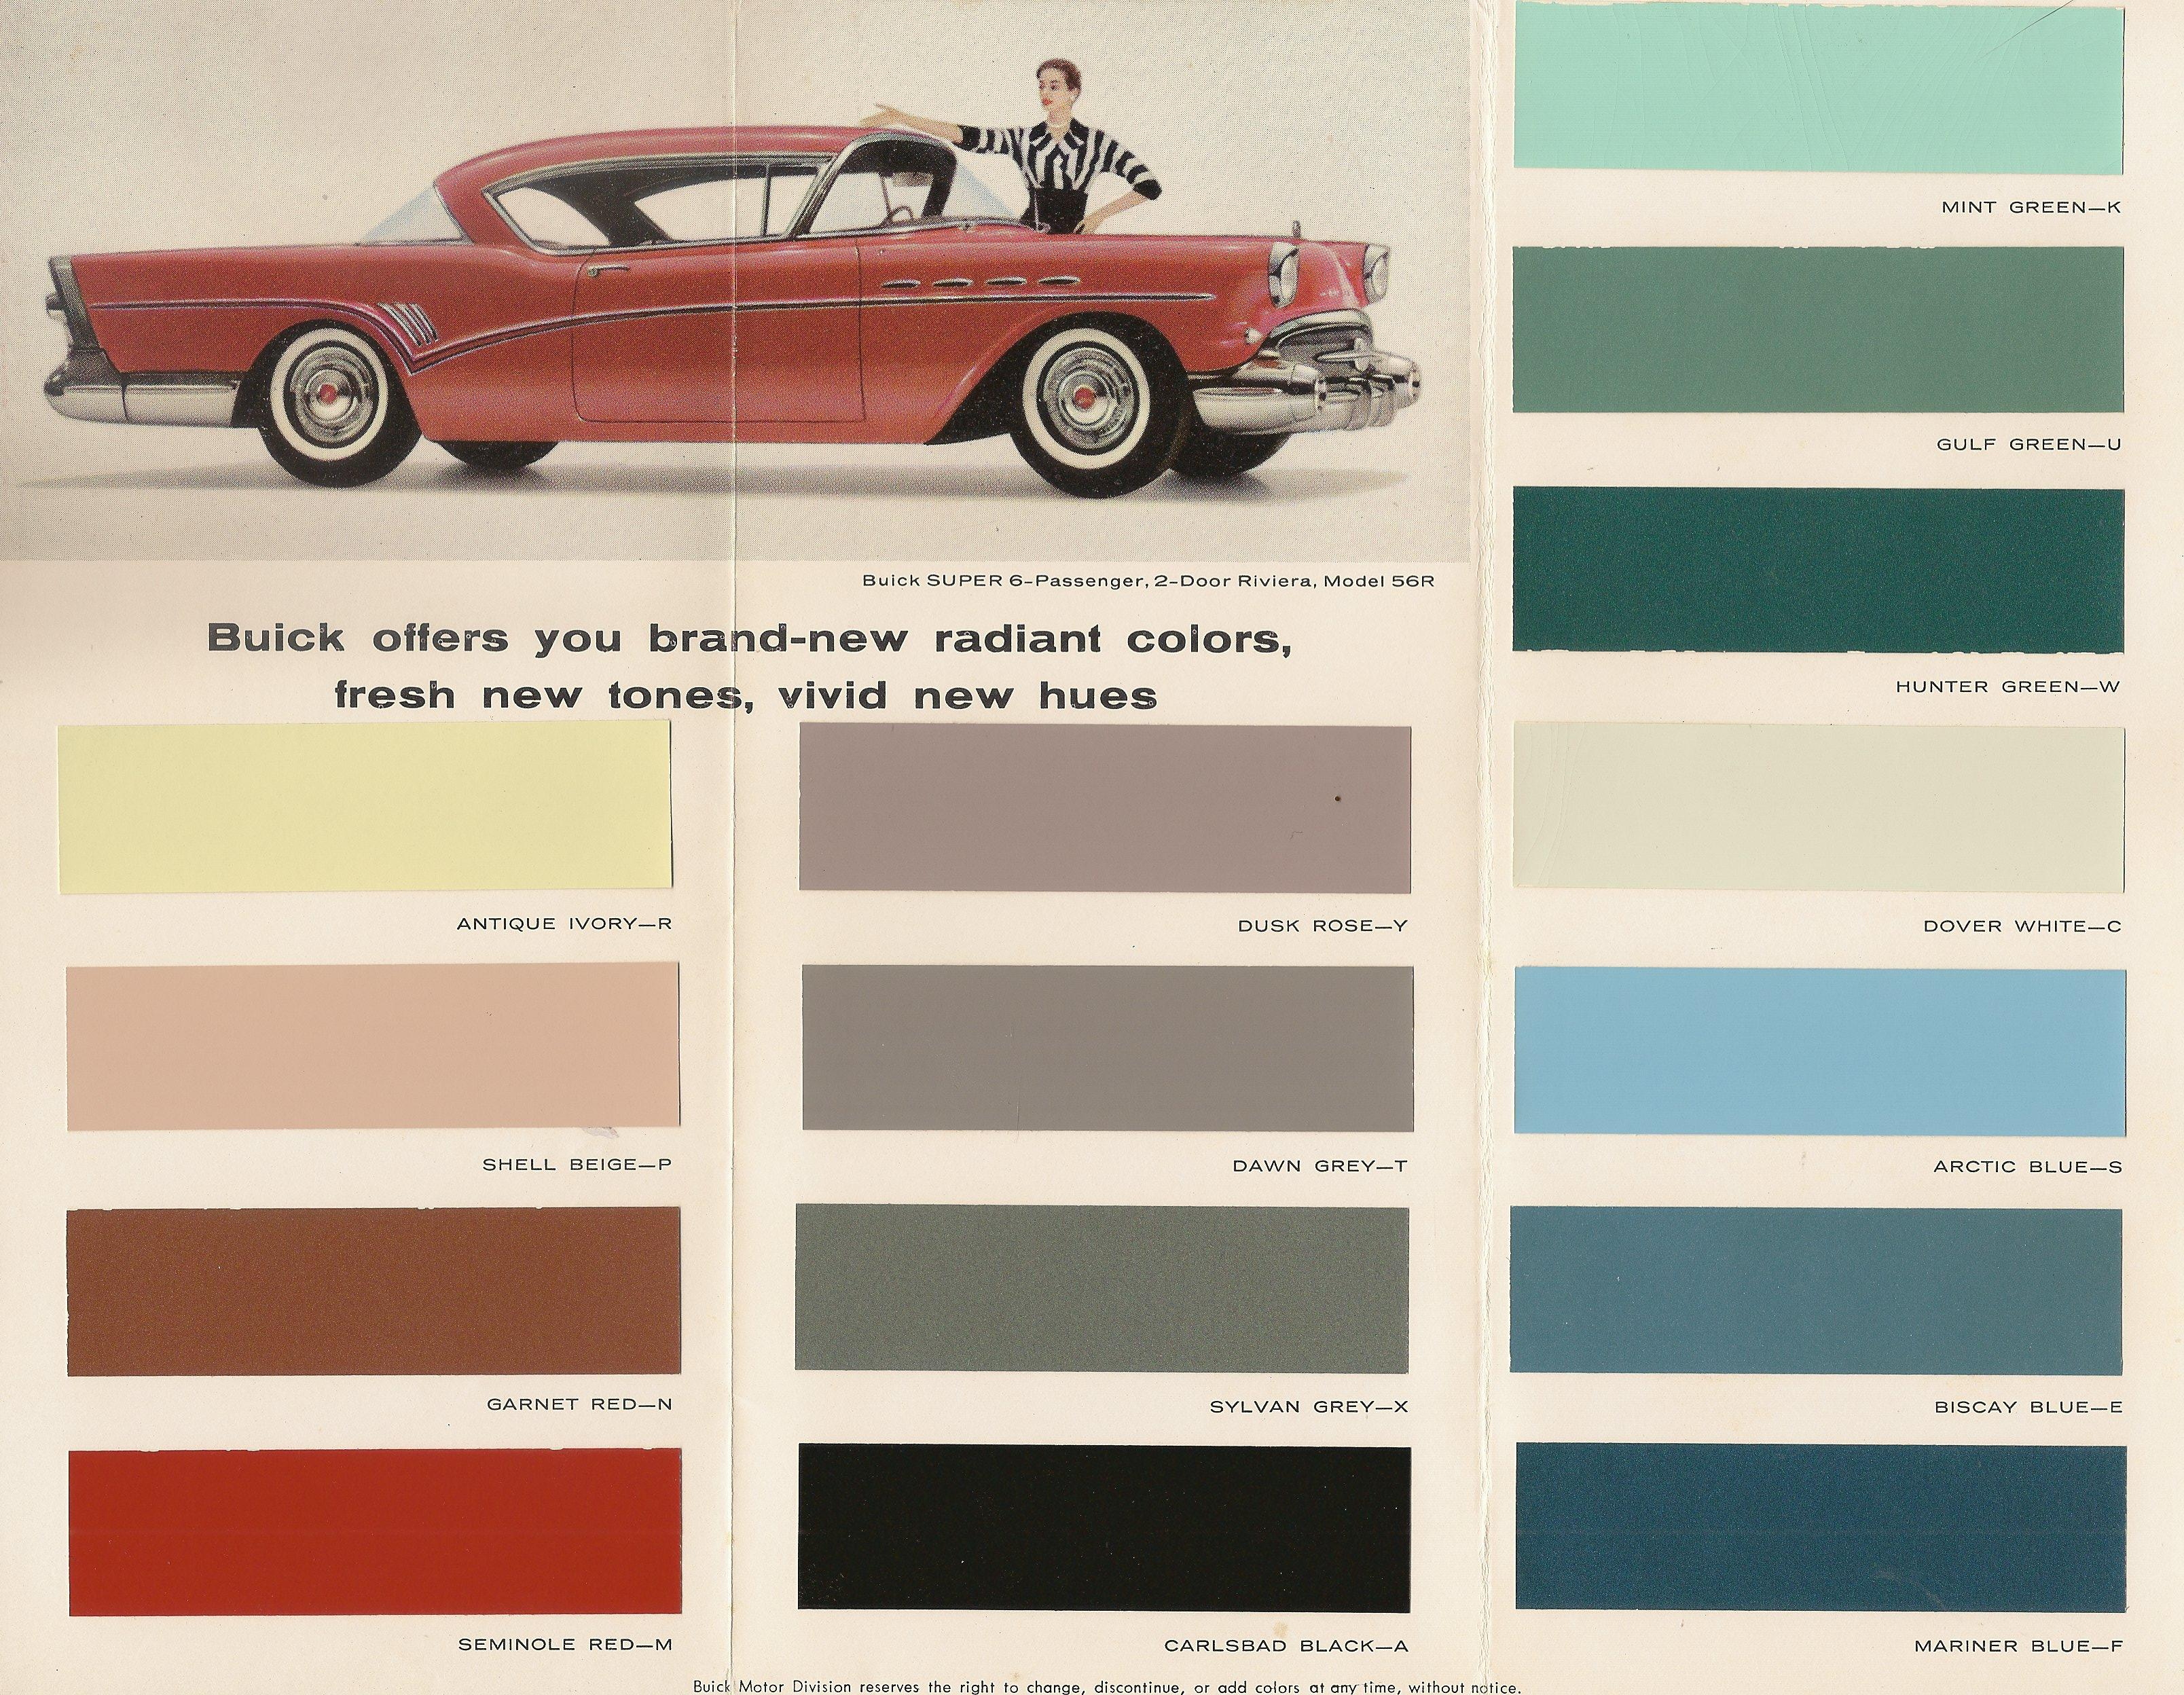 Colors For 1957 Garnet Red Versus Bittersweet Buick Post War Chevy Bel Air Convertible Color Choices 4 57 Rev Page 1